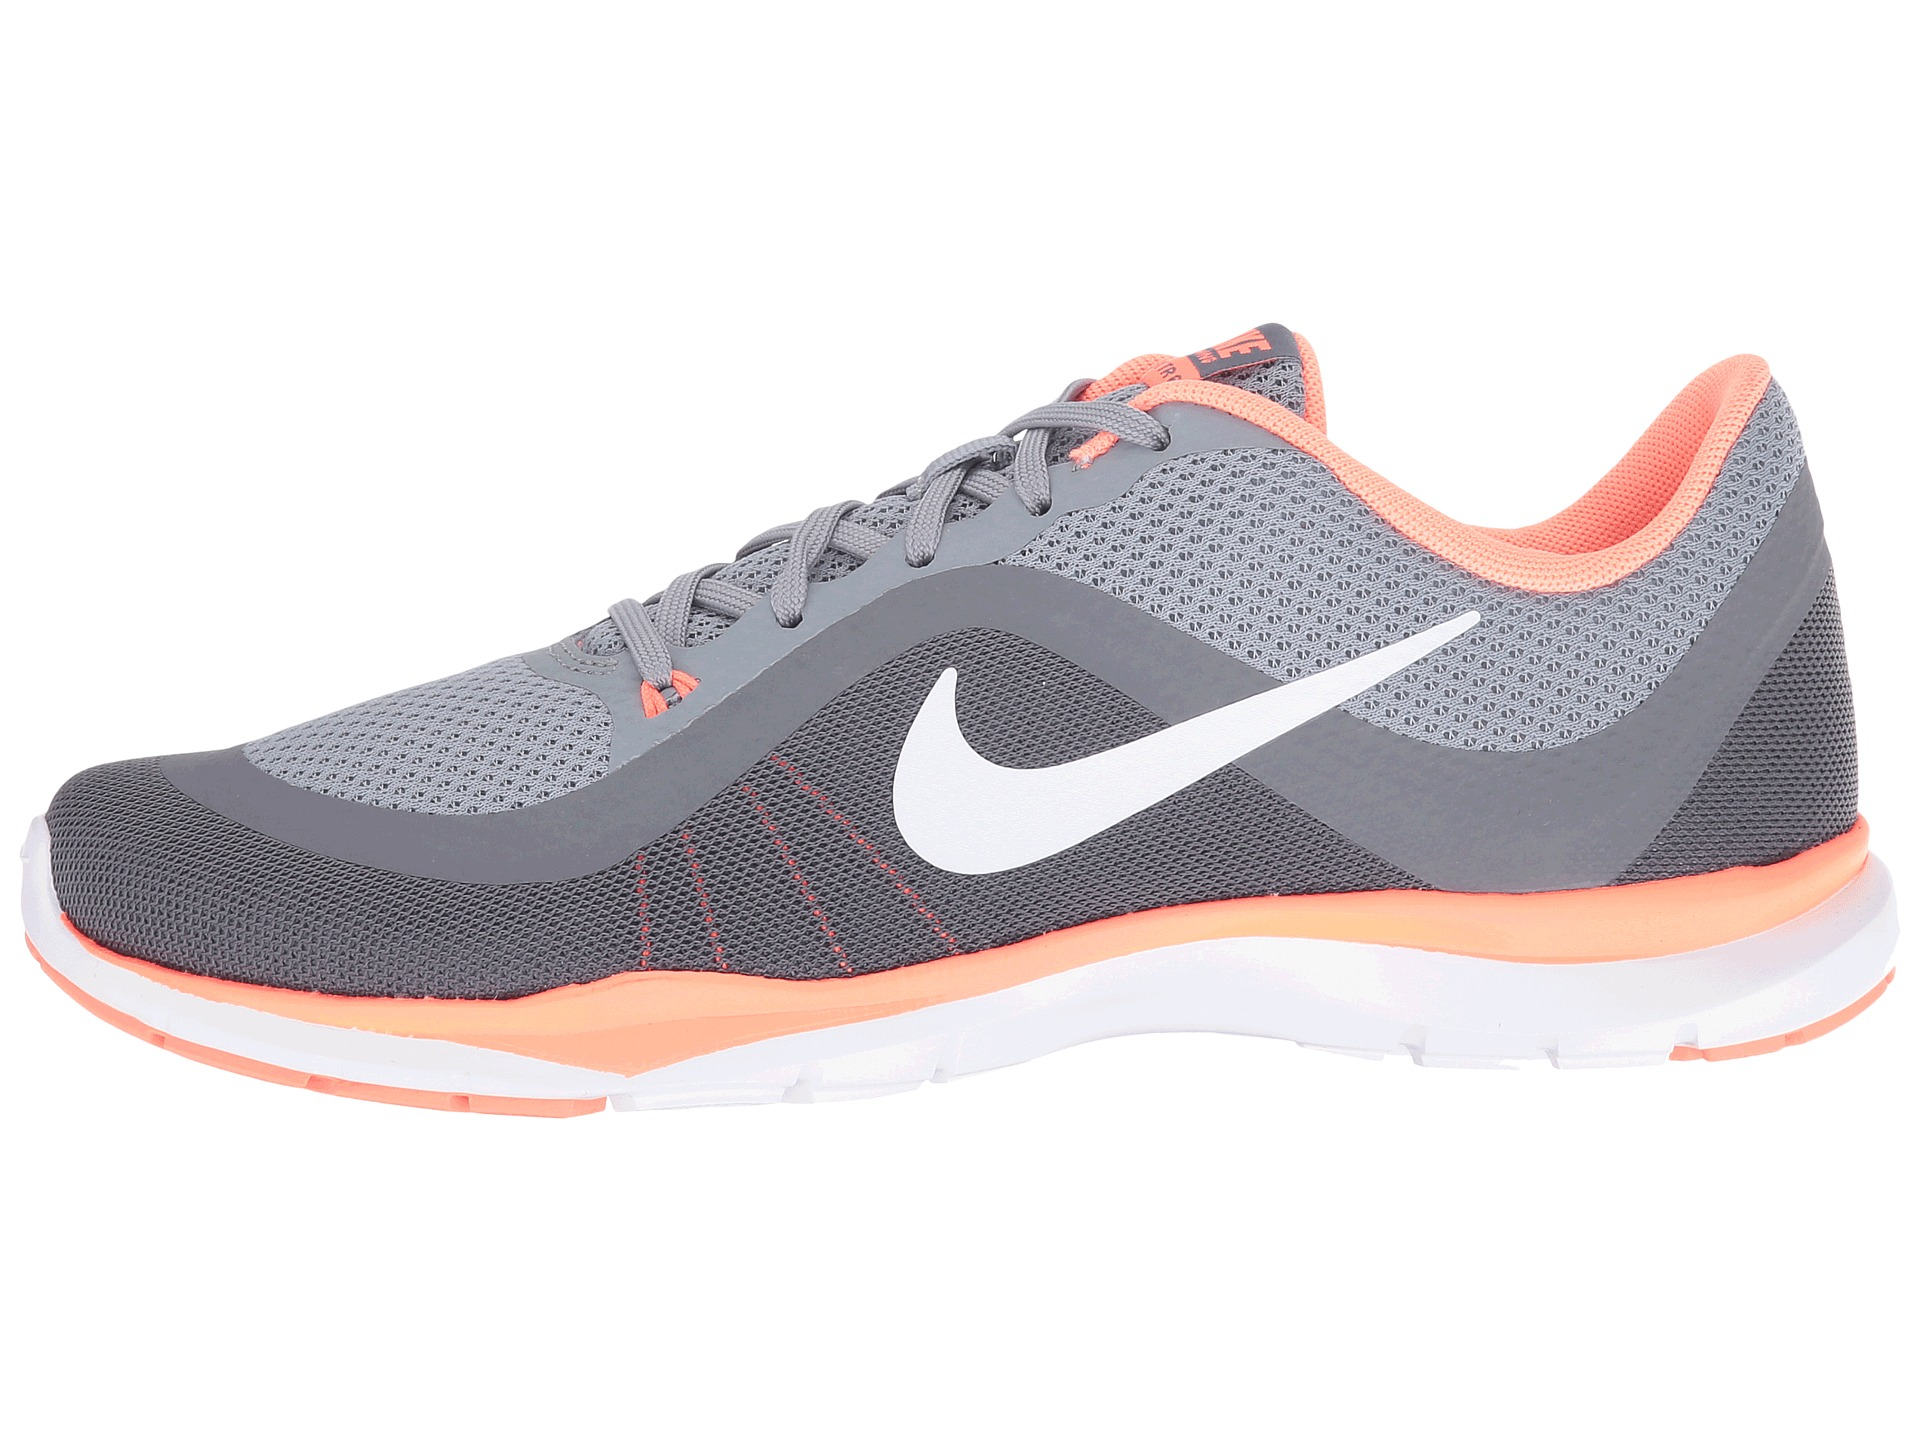 nike flex trainer 6 stealth white bright mango clear grey. Black Bedroom Furniture Sets. Home Design Ideas